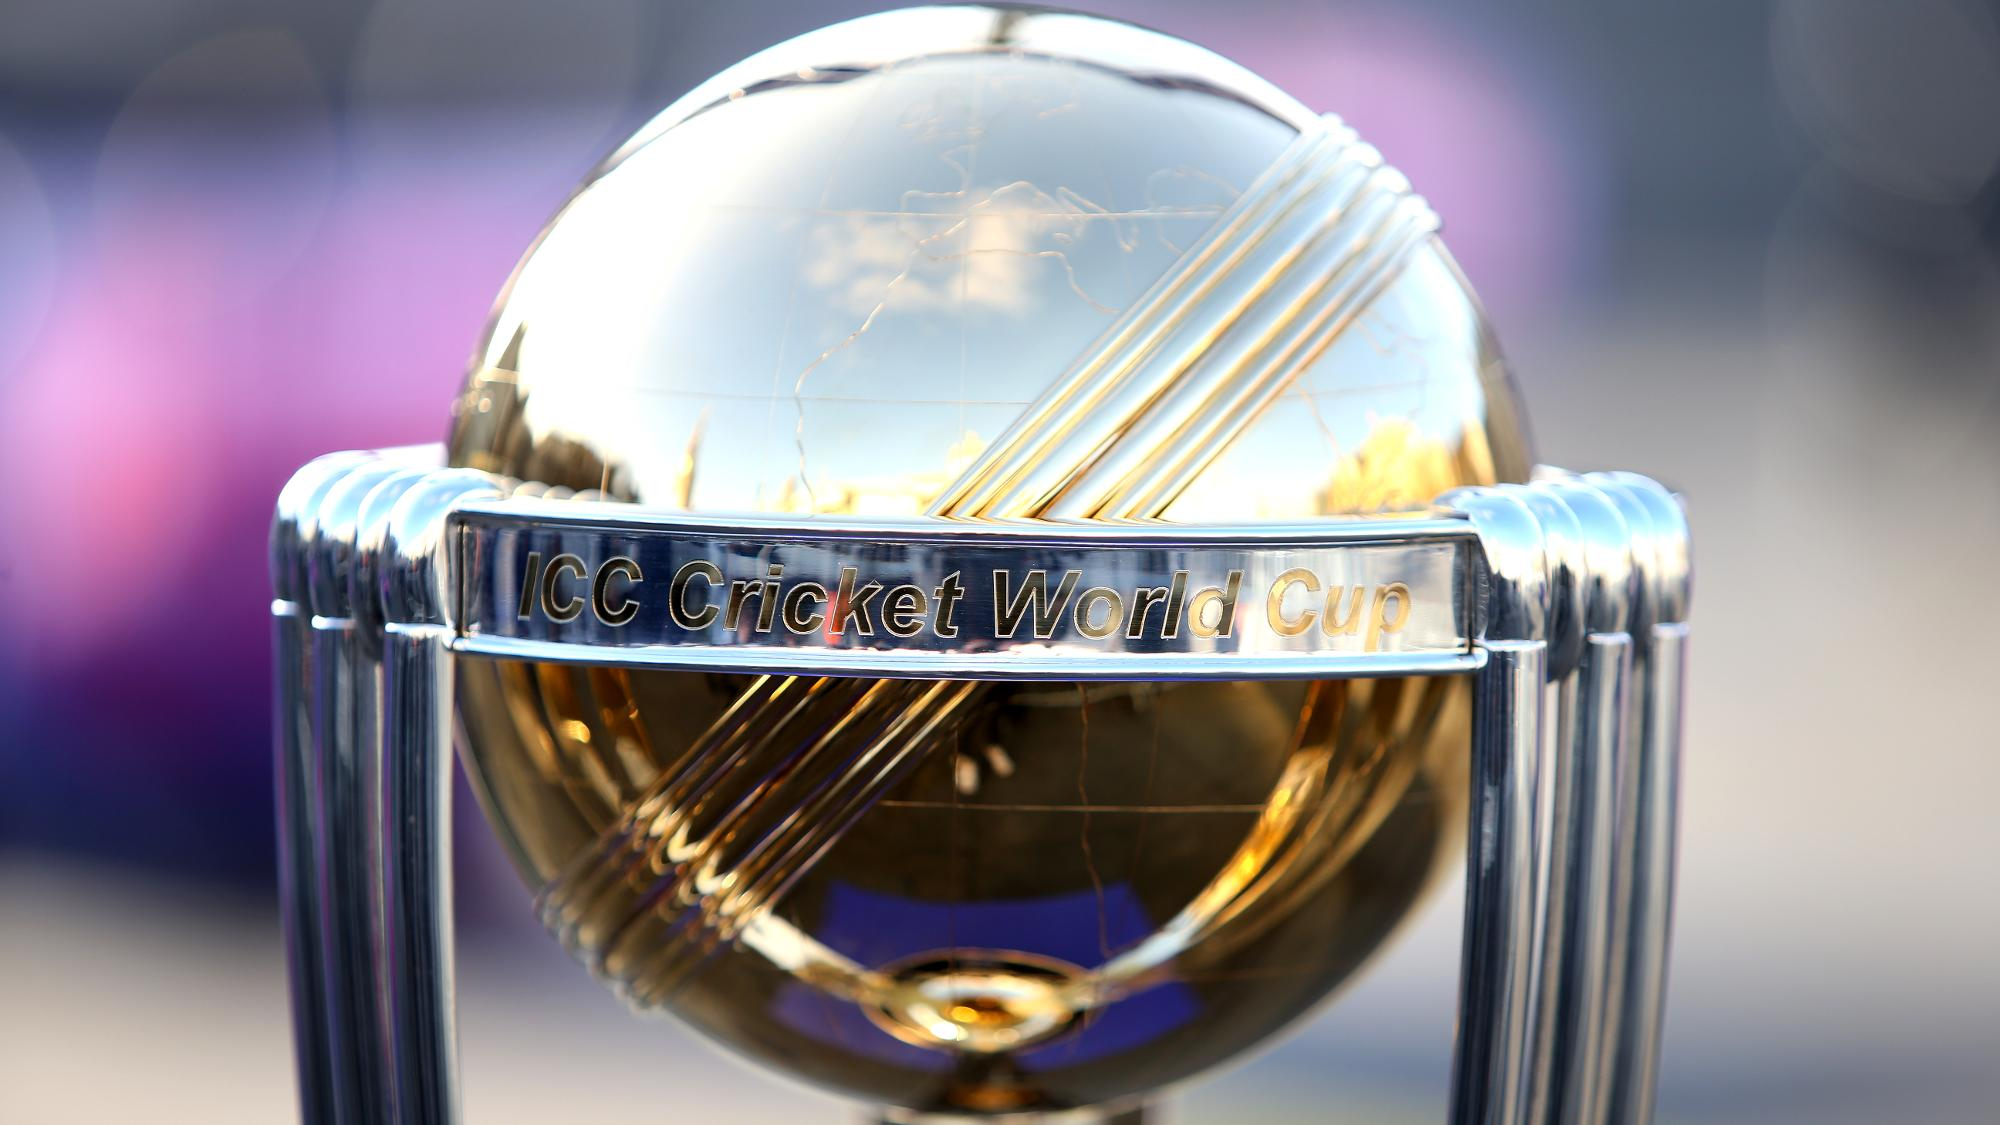 Cricket World Cup tickets back on sale across all teams and venues